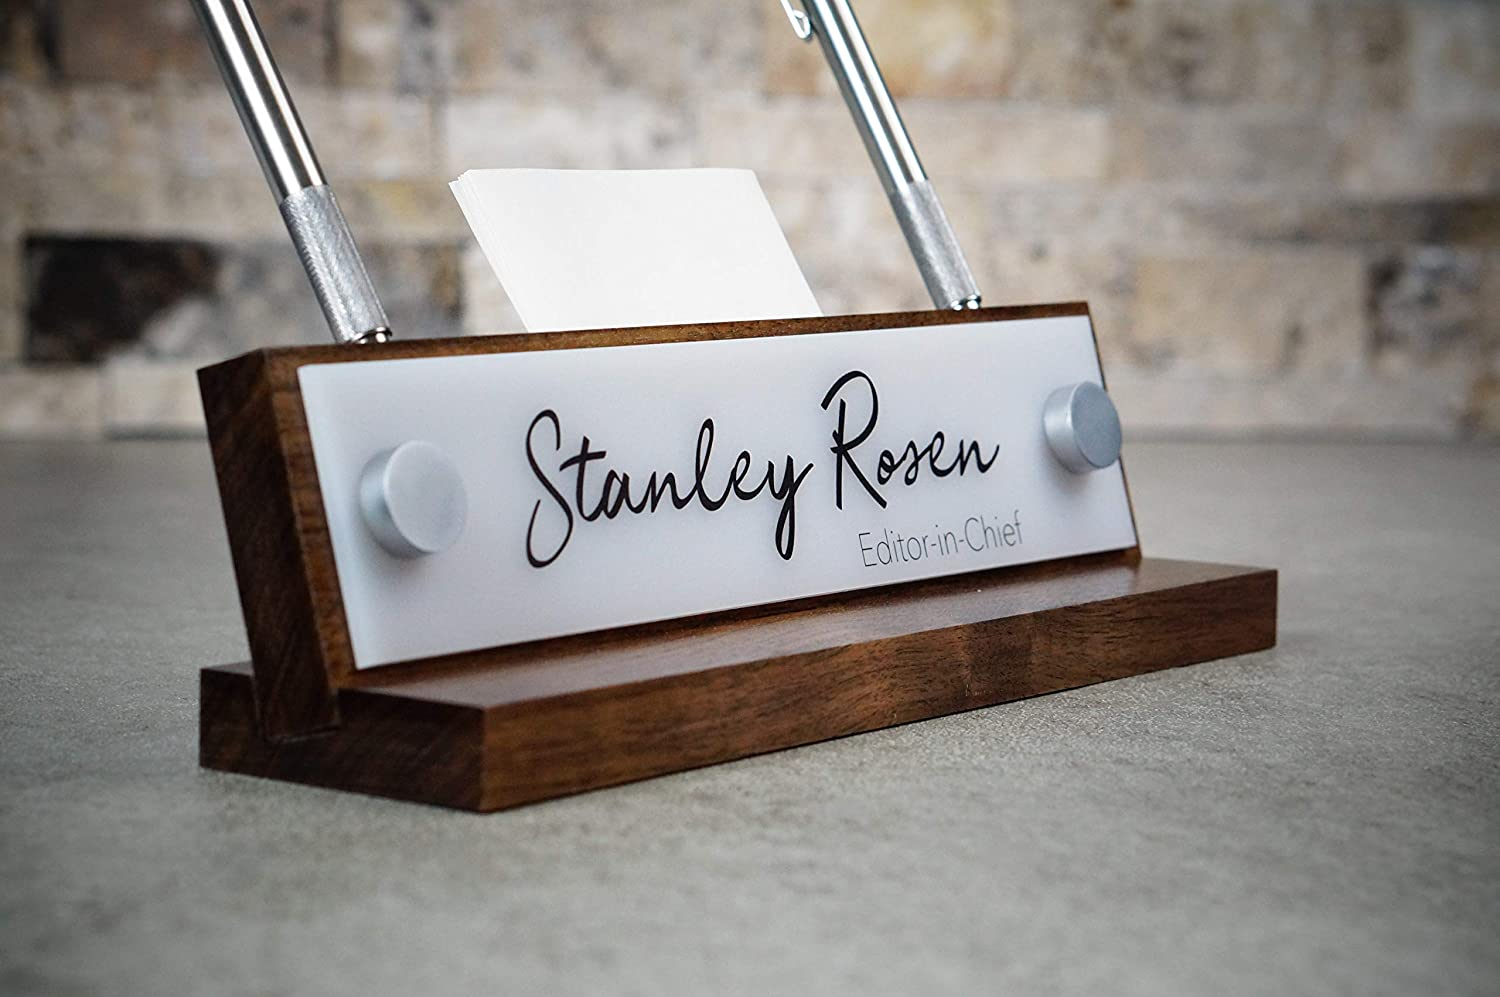 B016CN8RRQ Personalized Desk Name Plate - makes a great Co-Worker Gift 811Wq3sF7oL